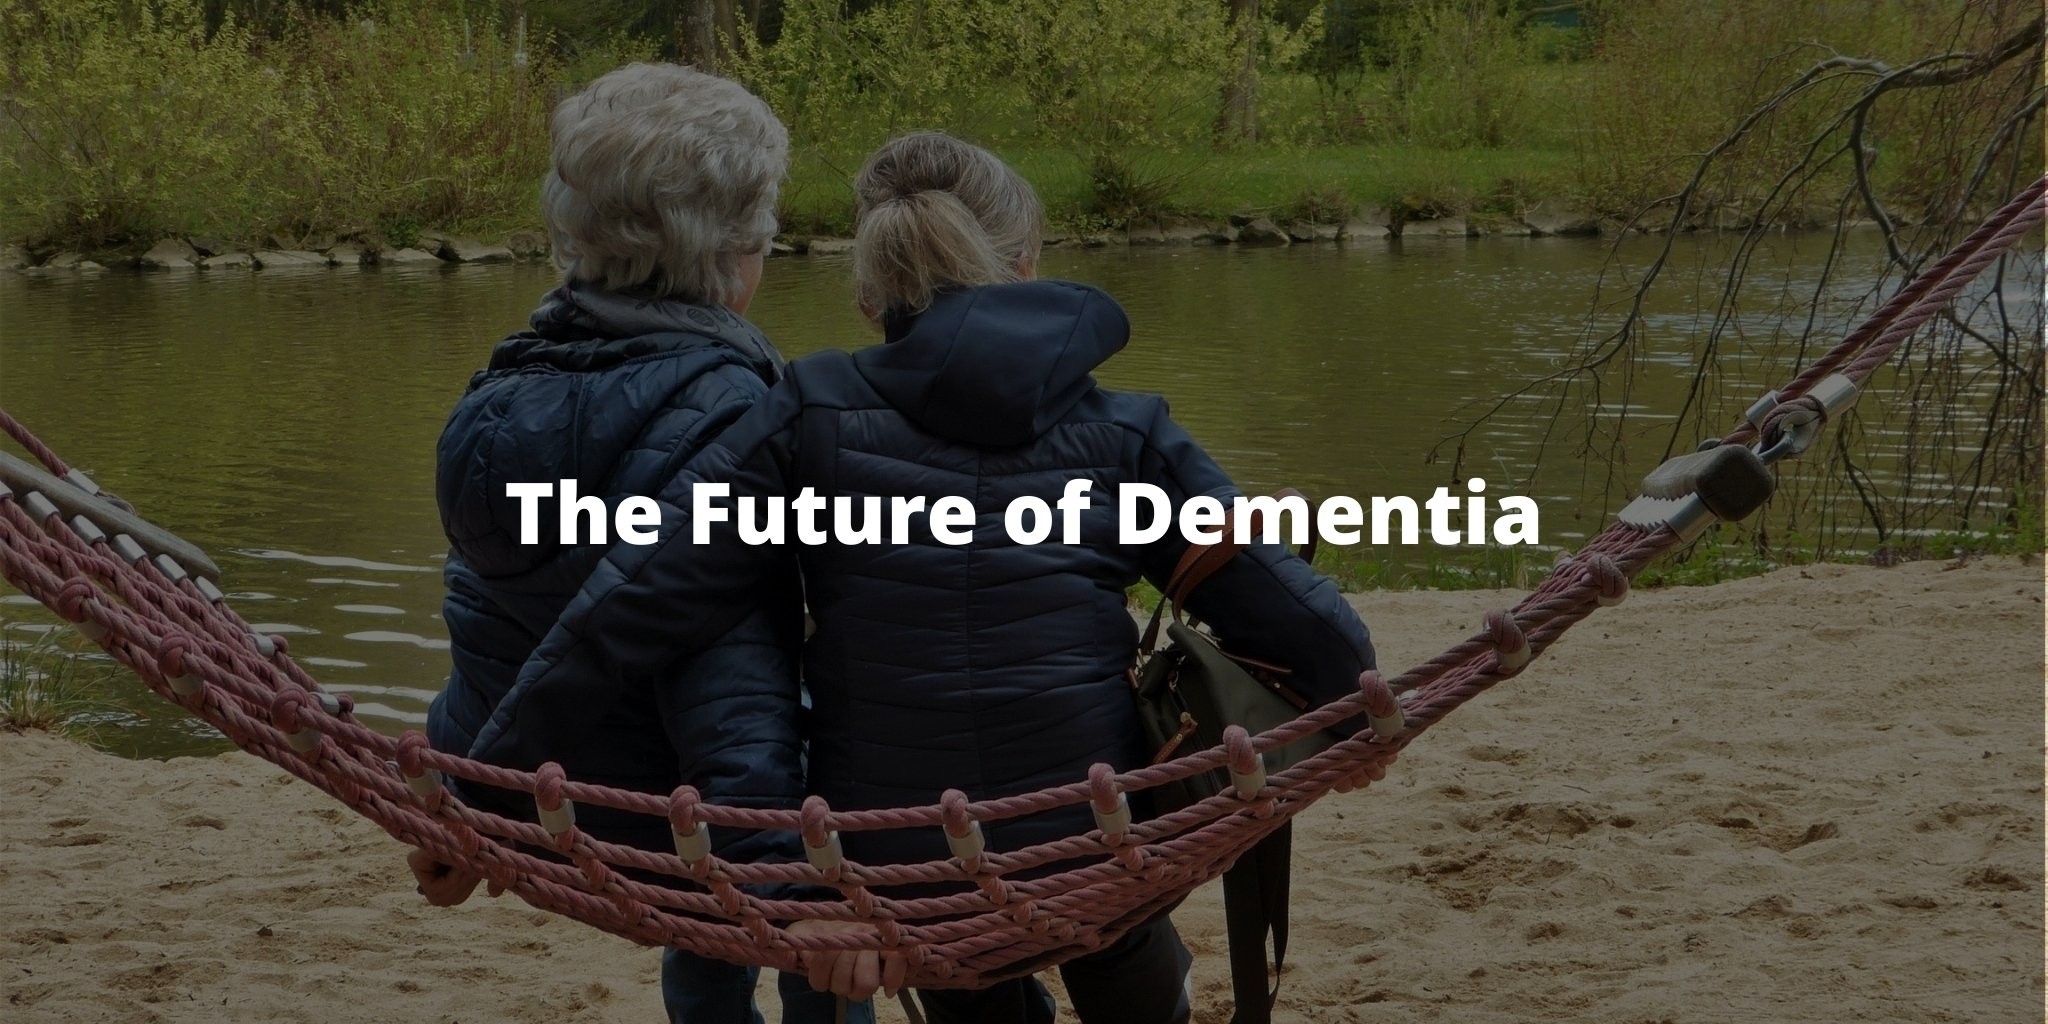 The Future of Dementia